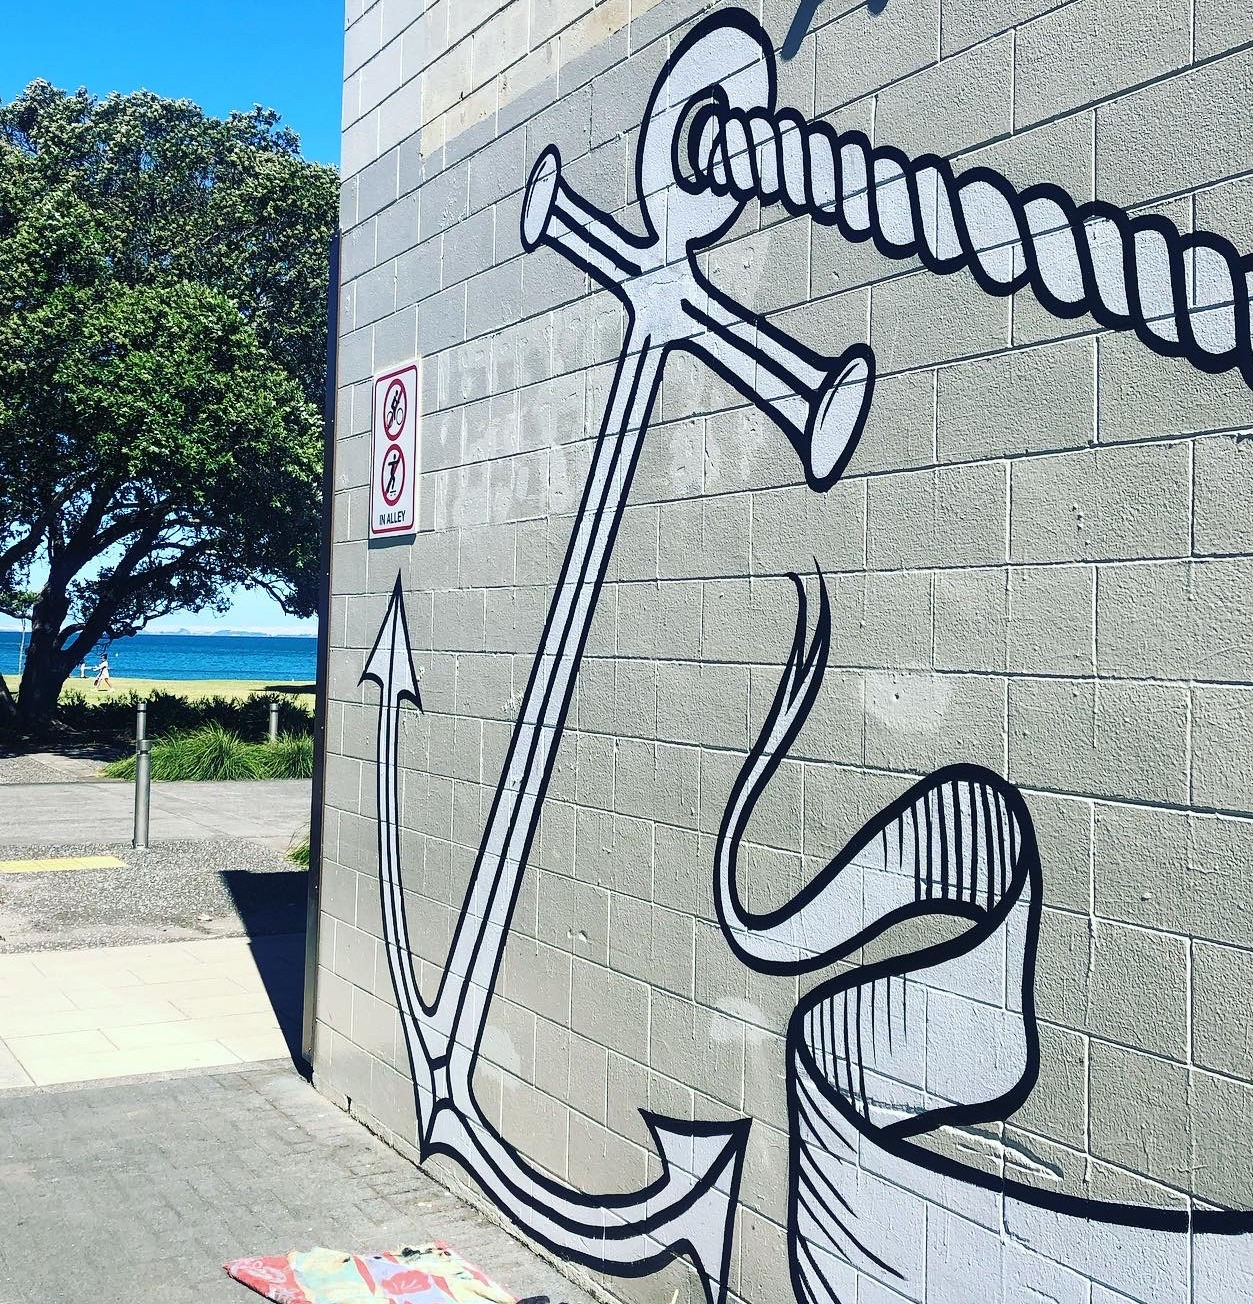 Browns Bay Mural